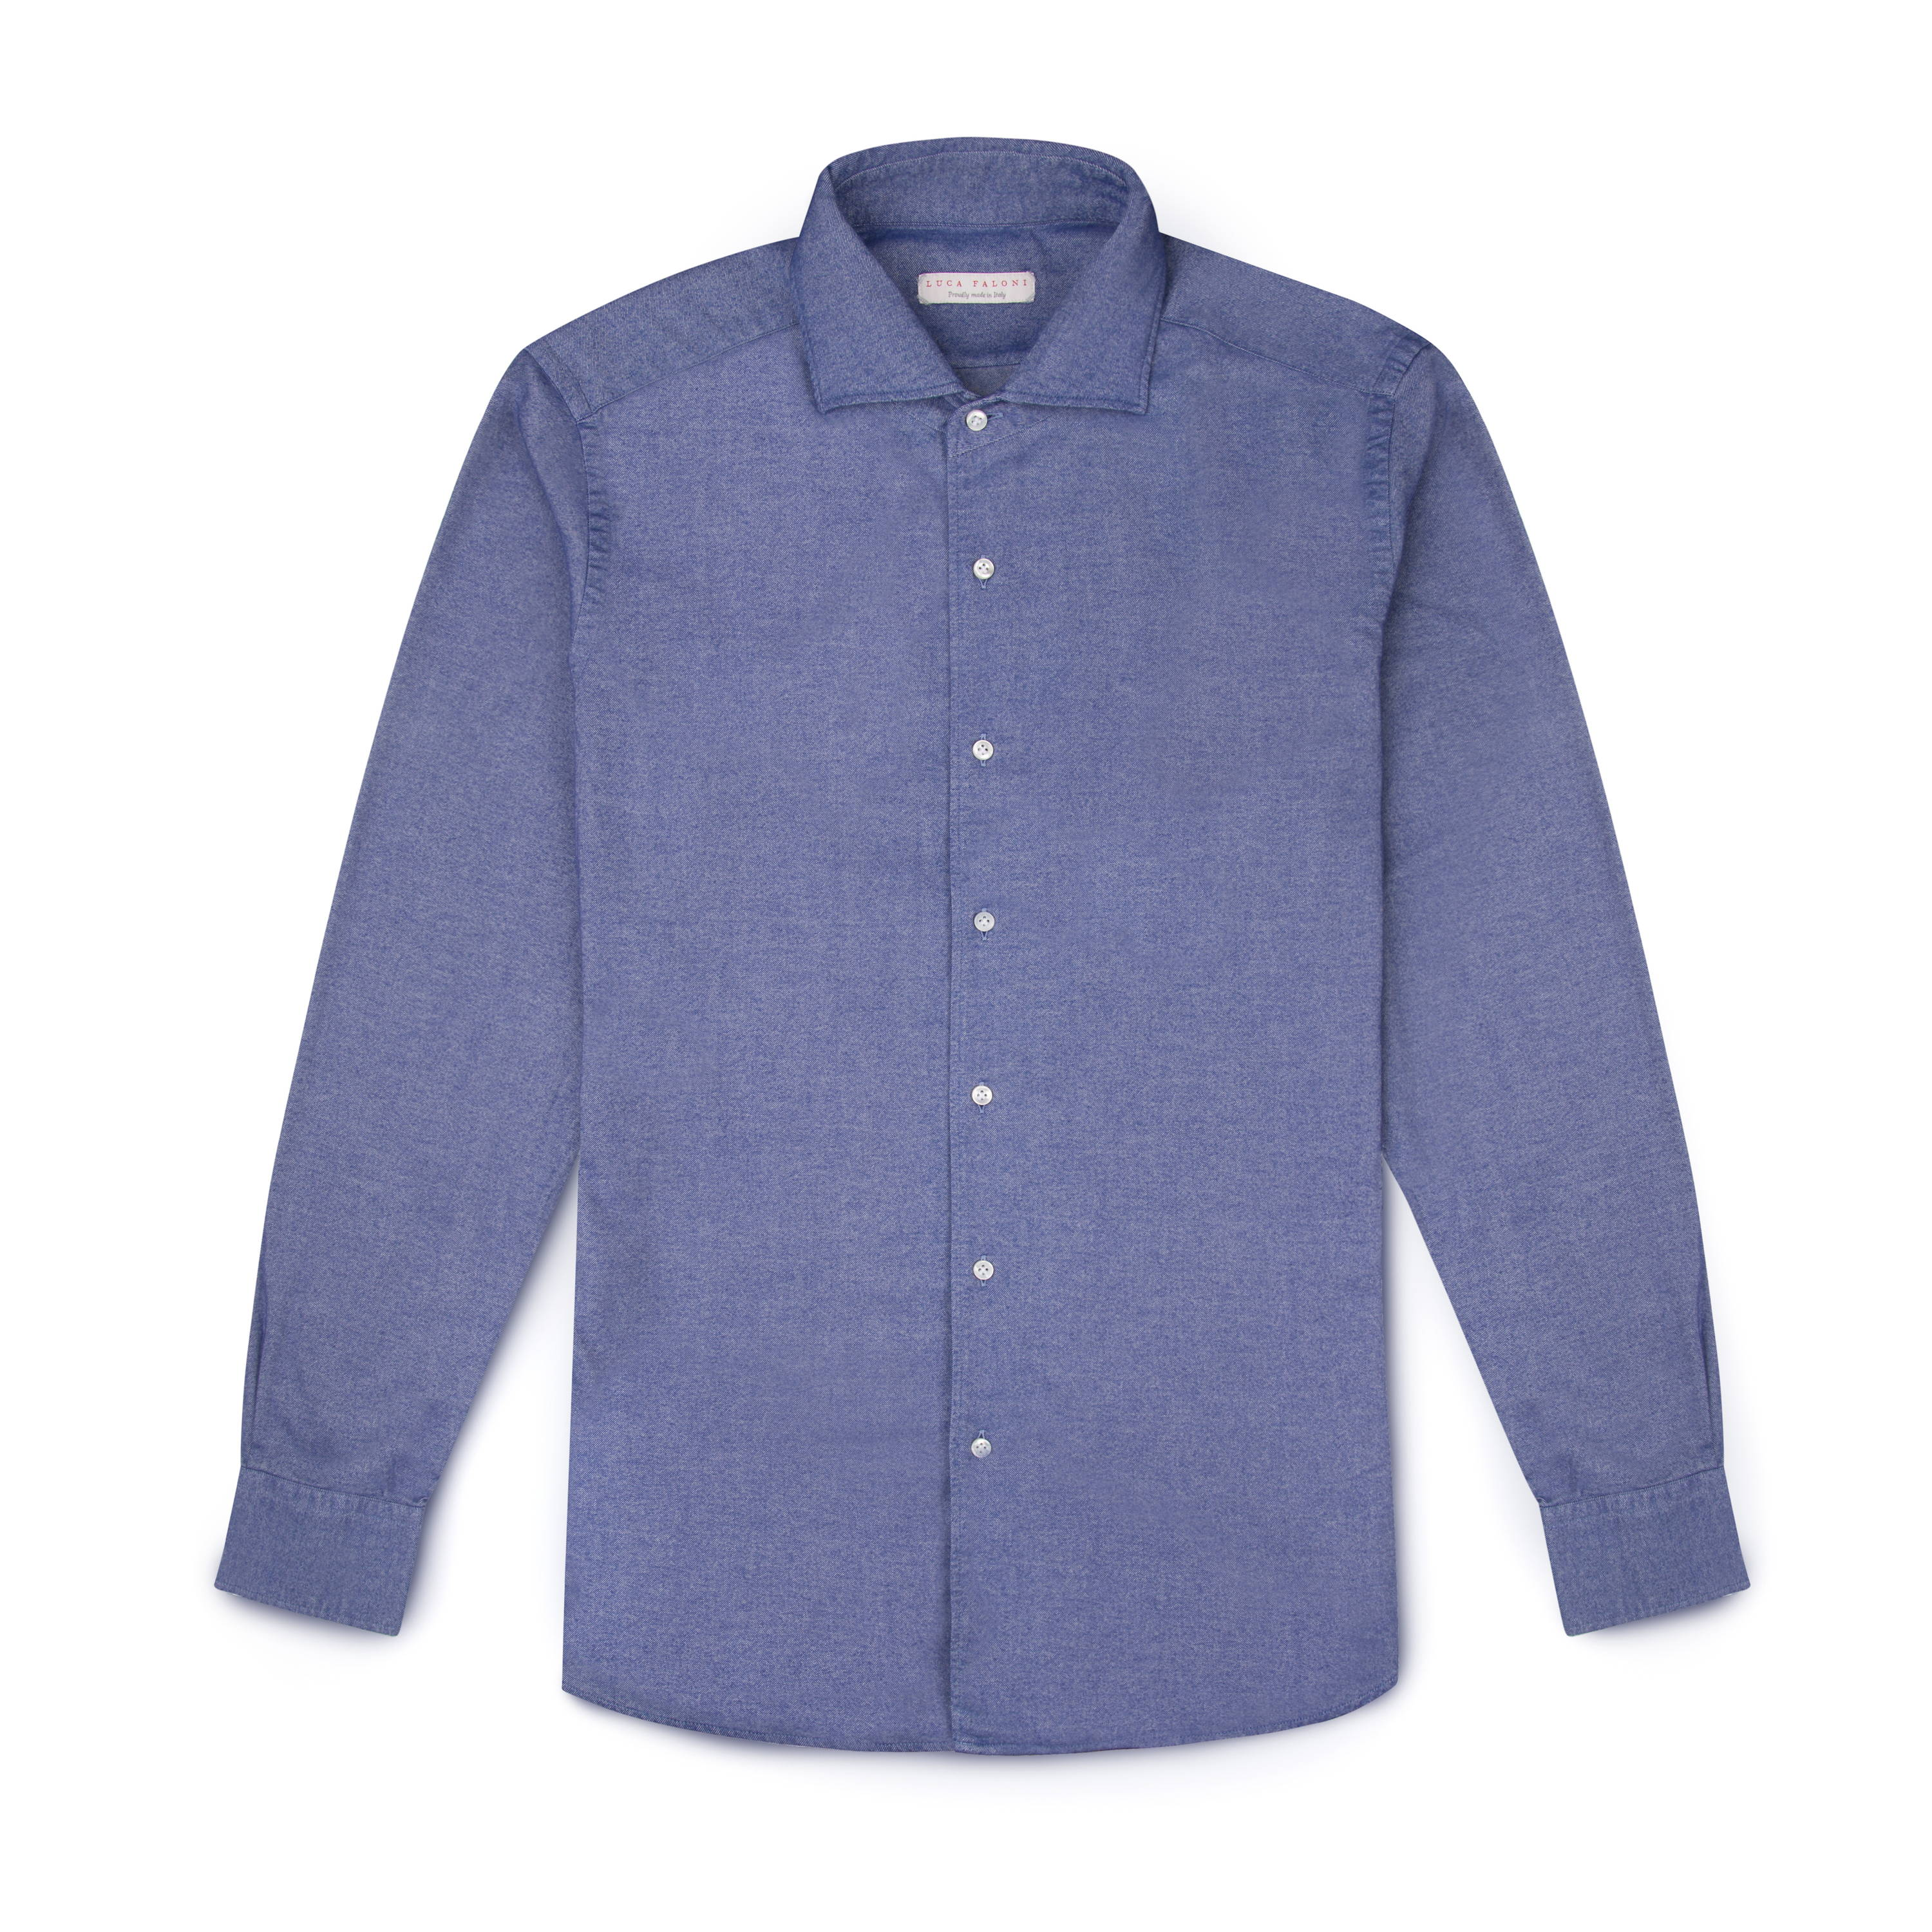 Luca Faloni  Dark Blue Brushed Cotton Shirt Made in Italy